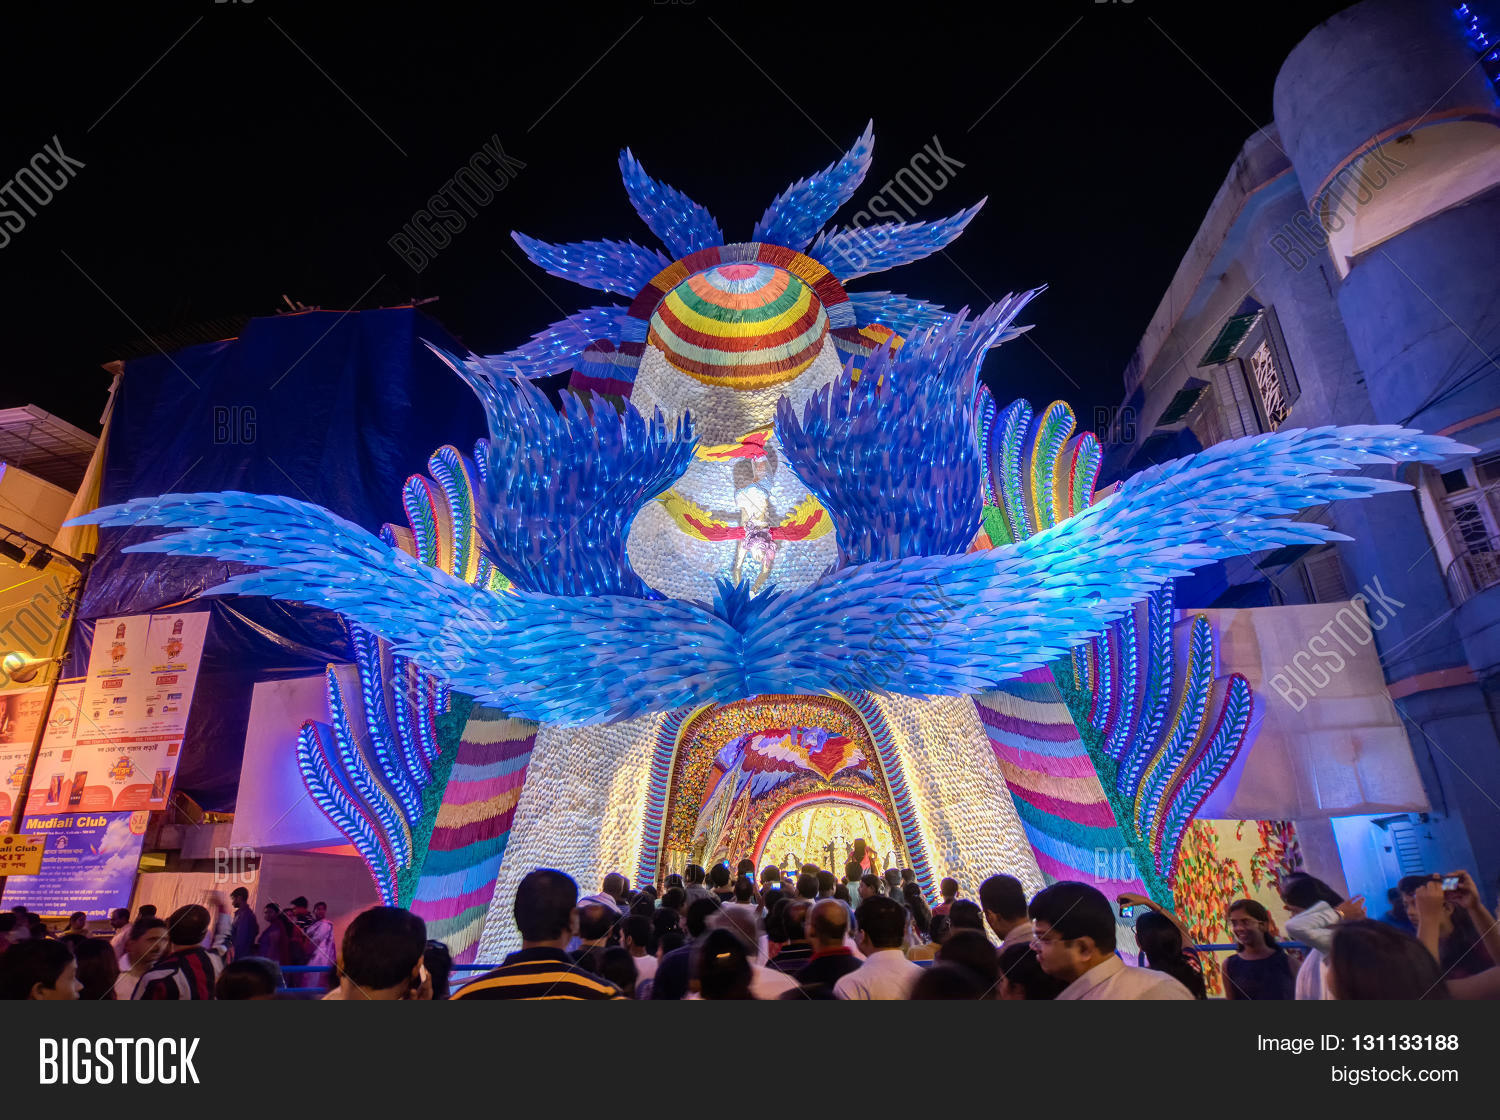 Kolkata india october 18 2015 image photo bigstock kolkata india october 18 2015 night image of decorated durga puja pandal shot at thecheapjerseys Images